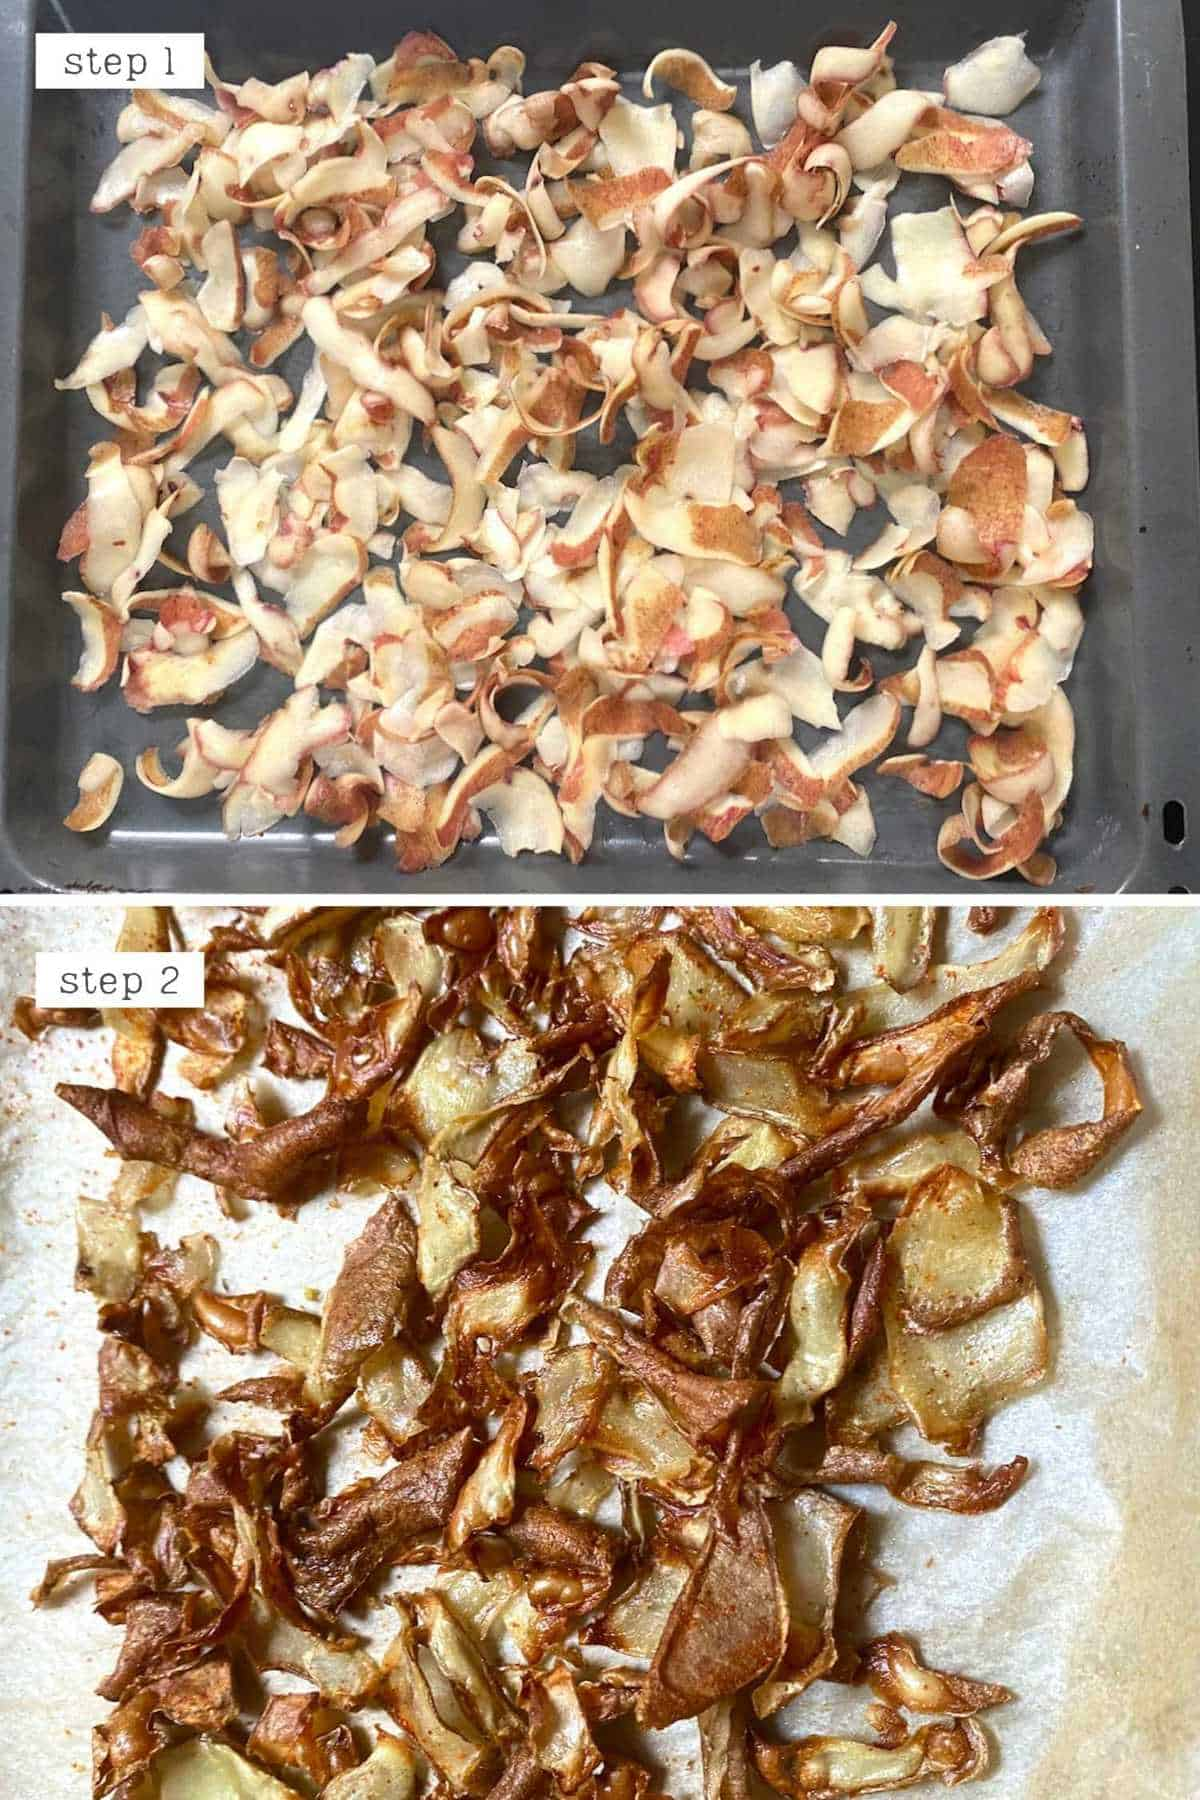 Steps for baking potato peel chips